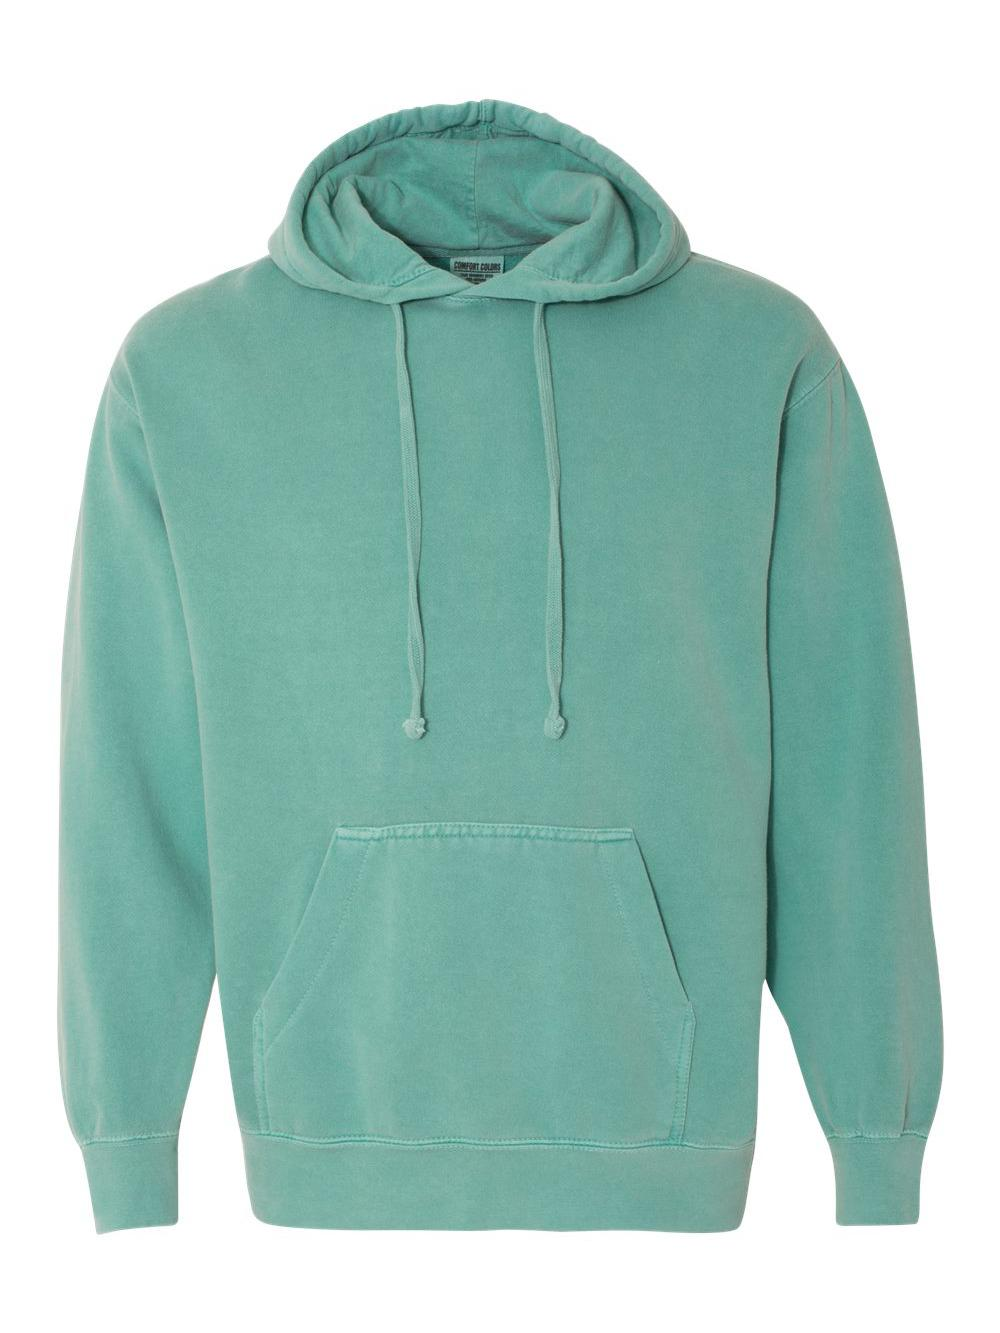 Comfort-Colors-Garment-Dyed-Hooded-Pullover-Sweatshirt-1567 thumbnail 29